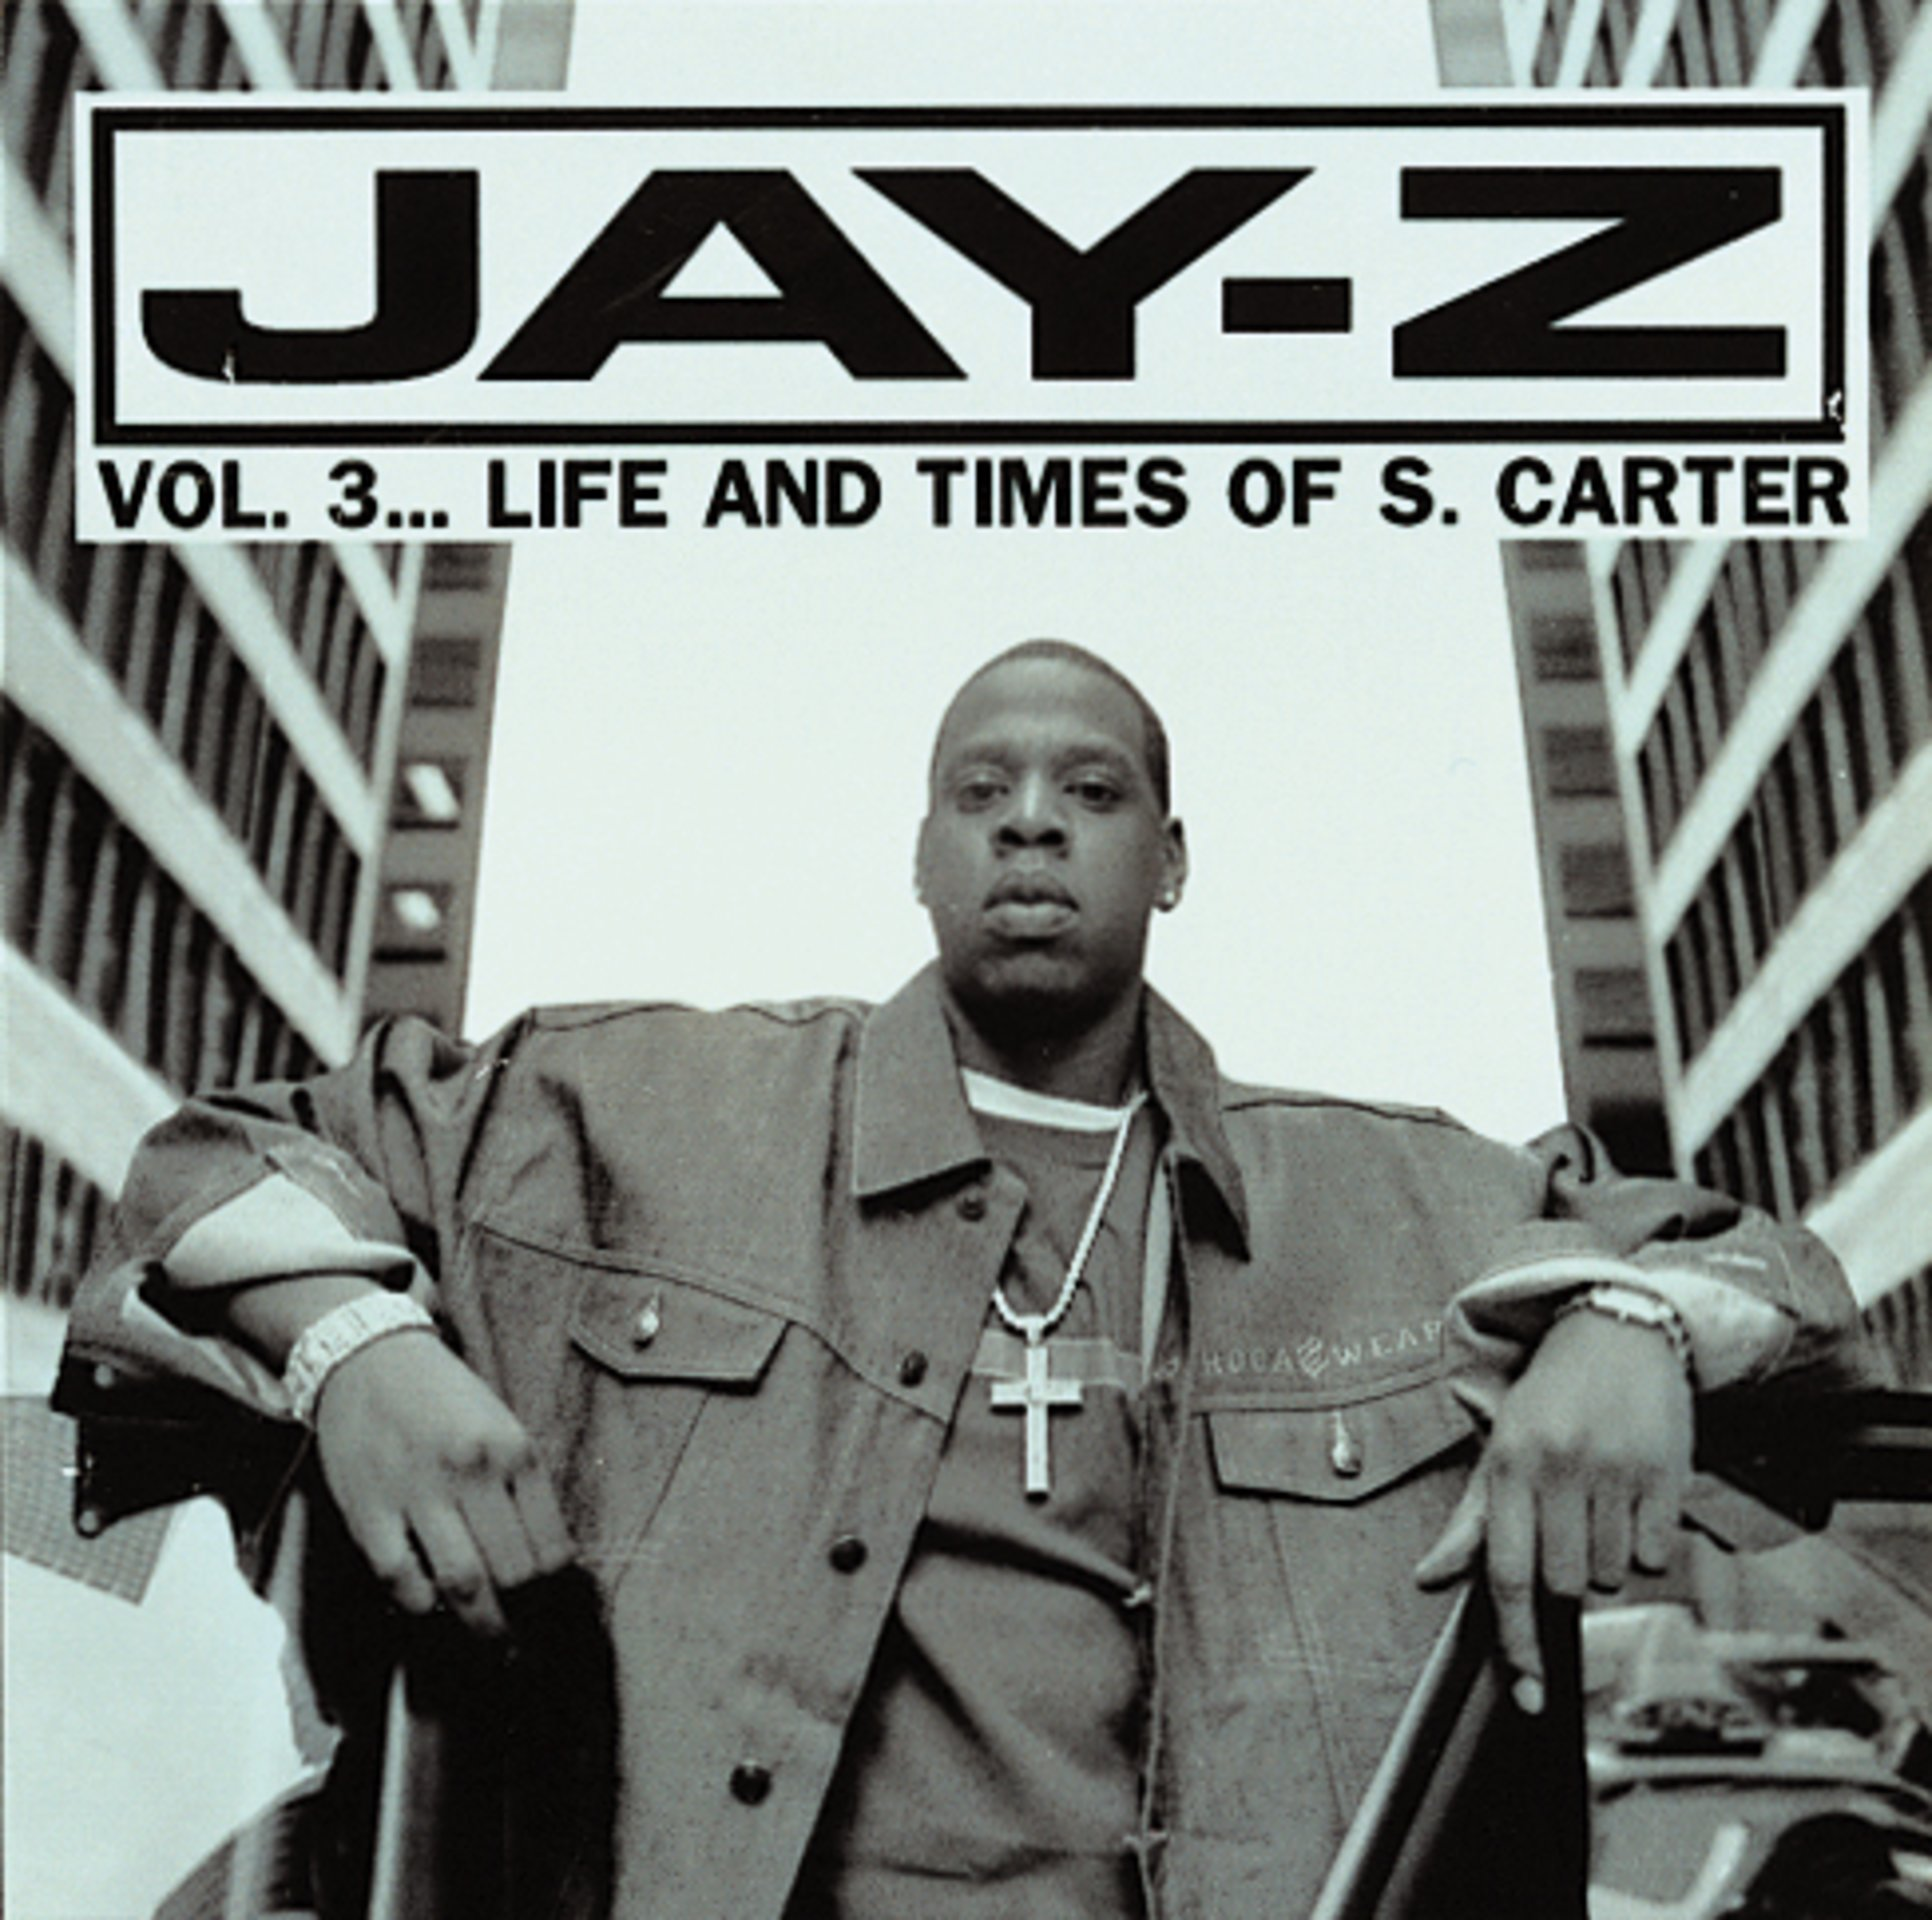 Jay z vol 3 download zip loudago jay z vol 3 download zip malvernweather Image collections